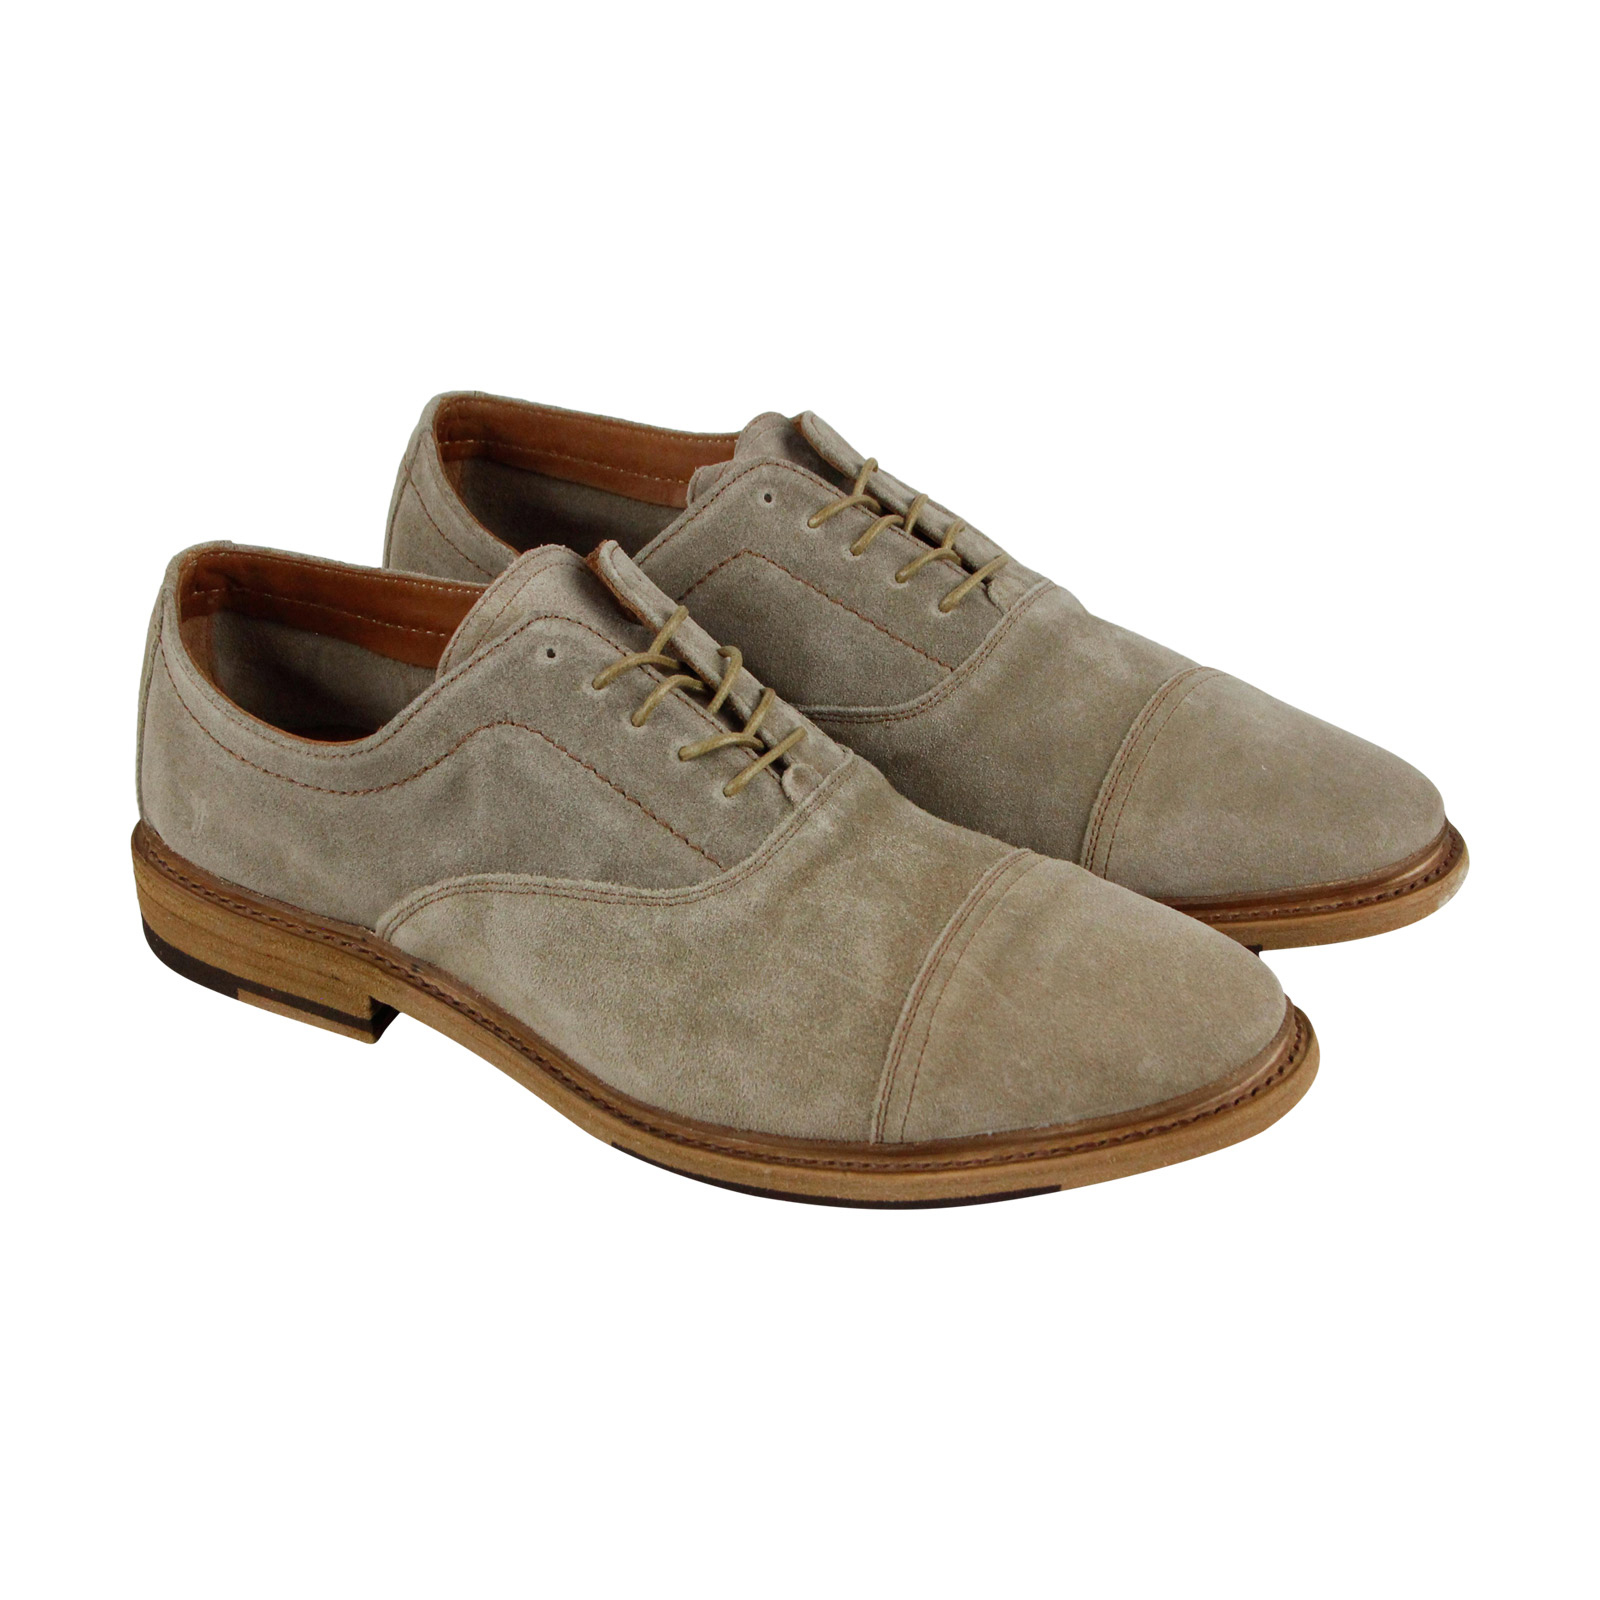 Frye Paul Bal Oxford Uomo Gray Suede Lace Casual Dress Lace Suede Up Oxfords Scarpe 88c3fa